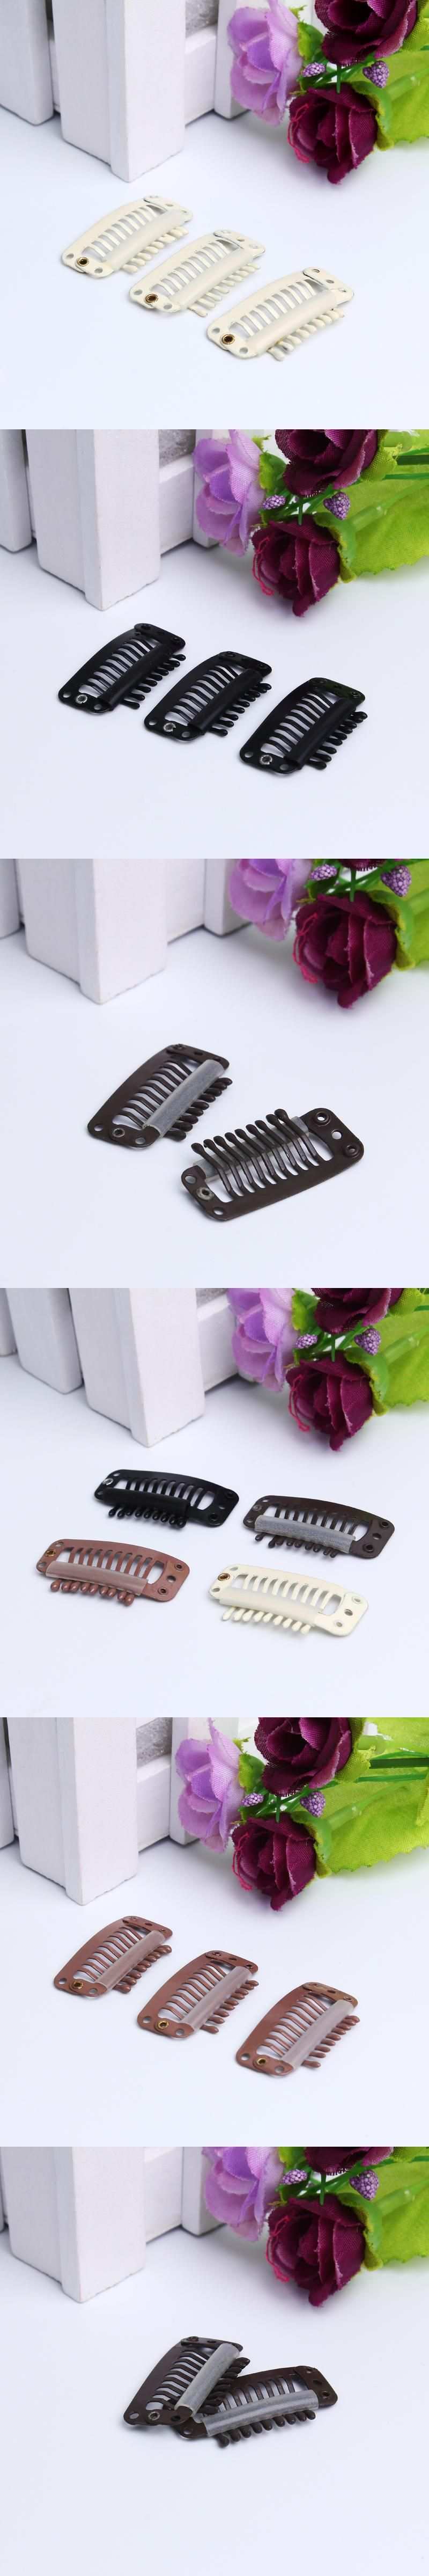 100pcs 32mm 9 Teeth Hair Extension Clips Snap Metal Clips With